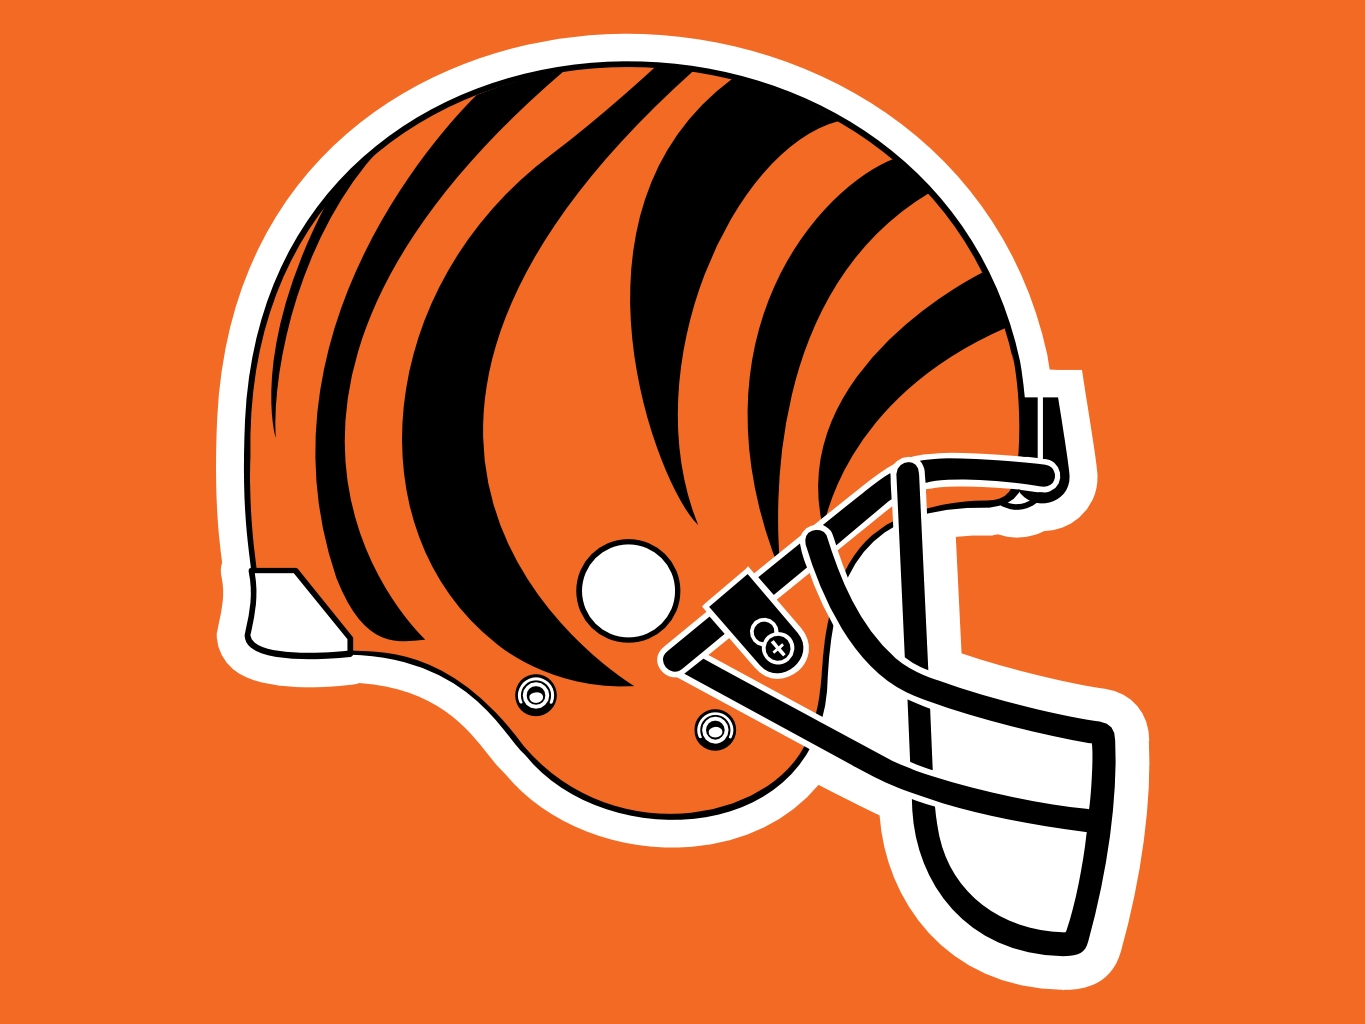 Image For 2015 Desktop Wa The 45 Logo Tablet Mobile To Bengals Free Cincinnati And Size 1365x1024 Your 2015 Each amp; Schedule Download Full Explore Wallpaper Preview Click Screensavers